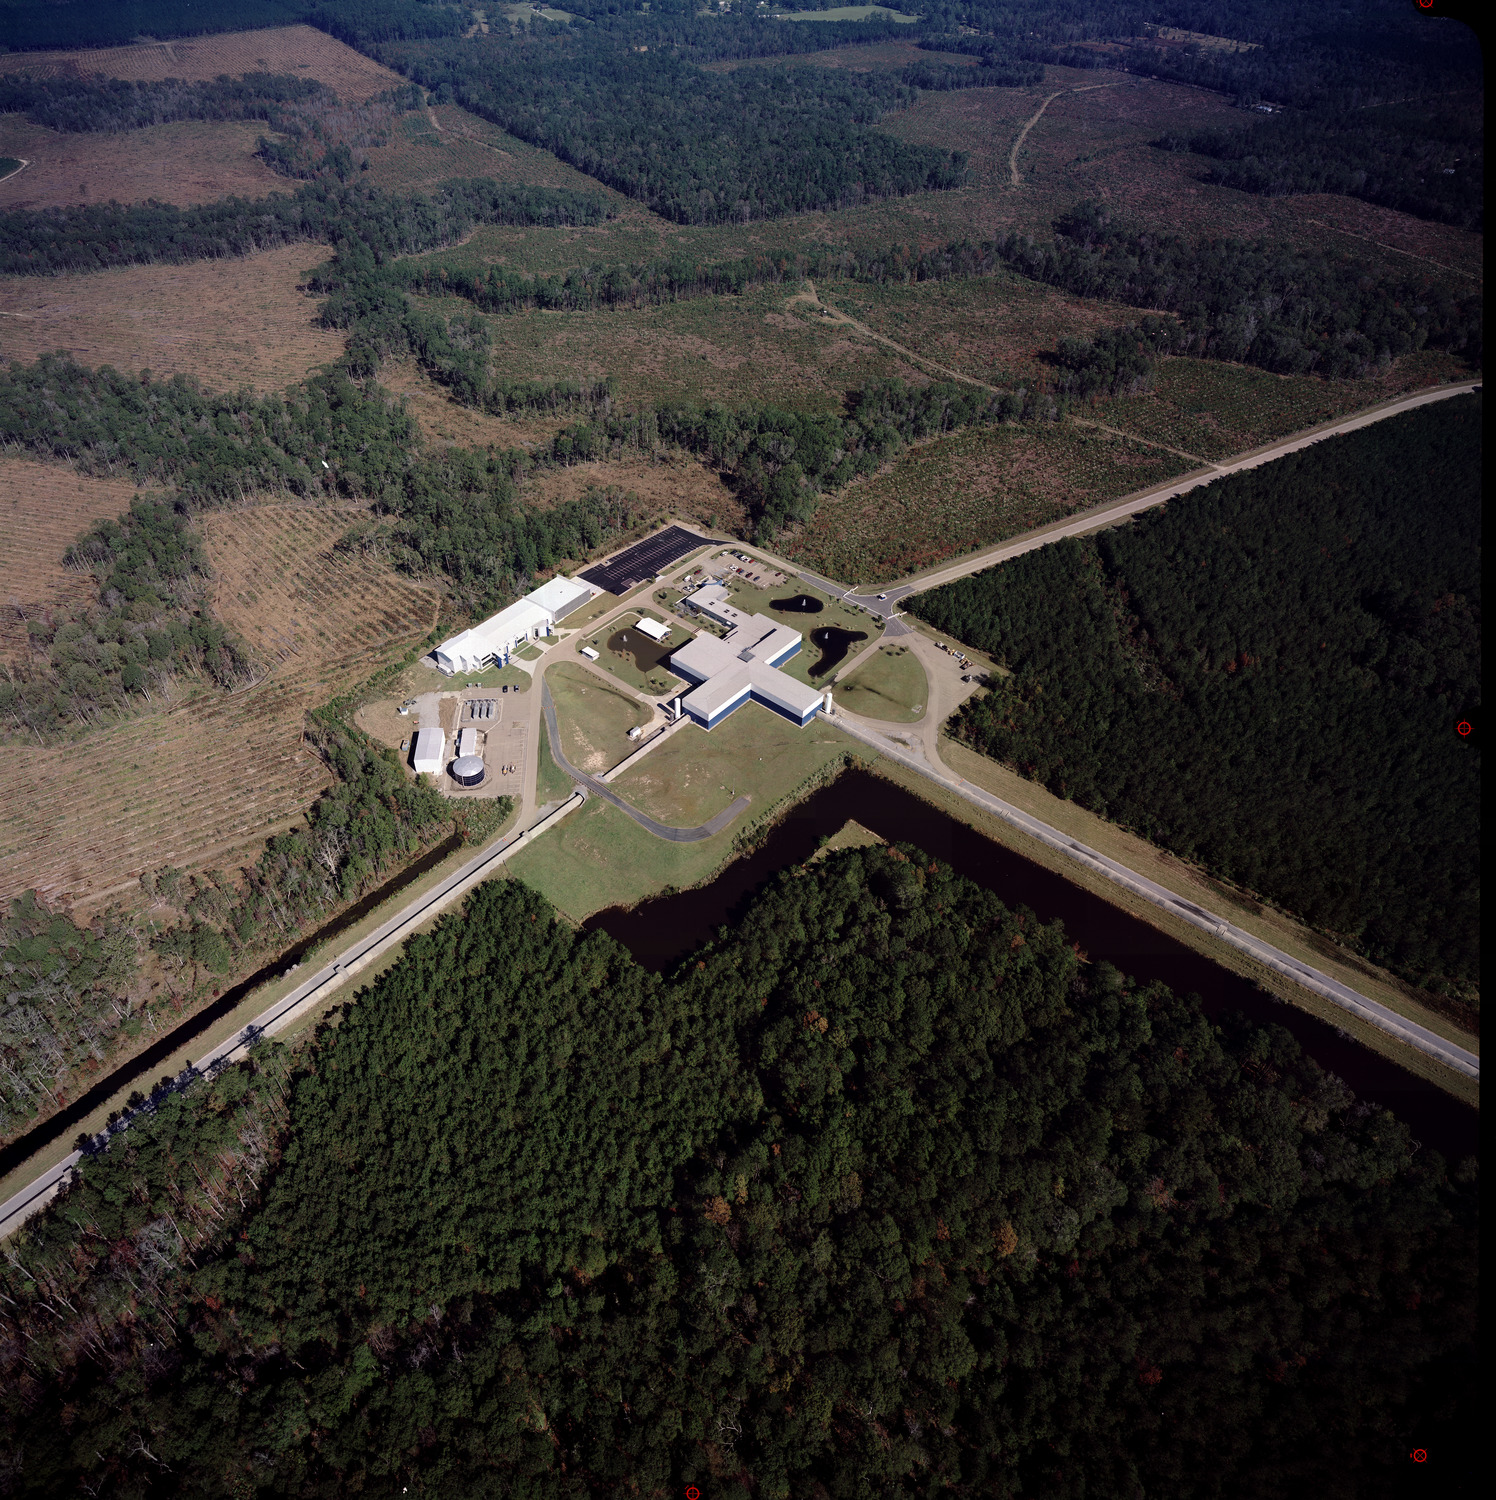 LIGO's Livingston detector site.